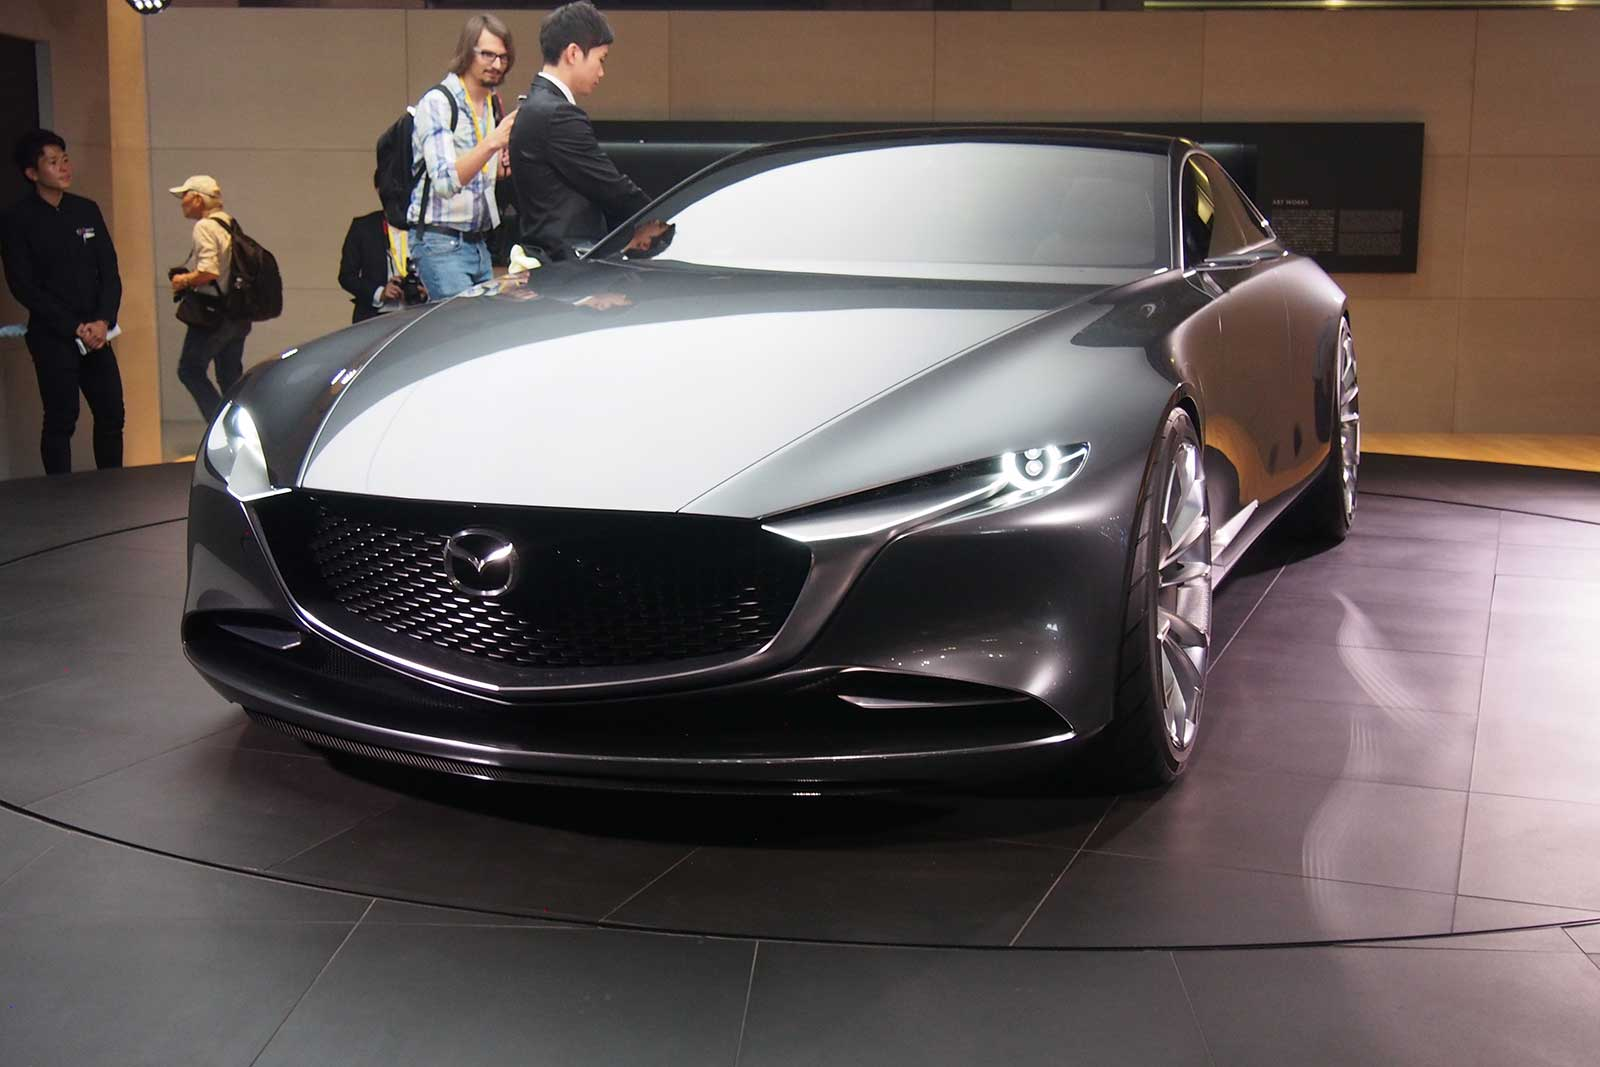 Mazda Coupe 6 >> Mazda Vision Coupe Concept Looks Like Sex on Wheels » AutoGuide.com News